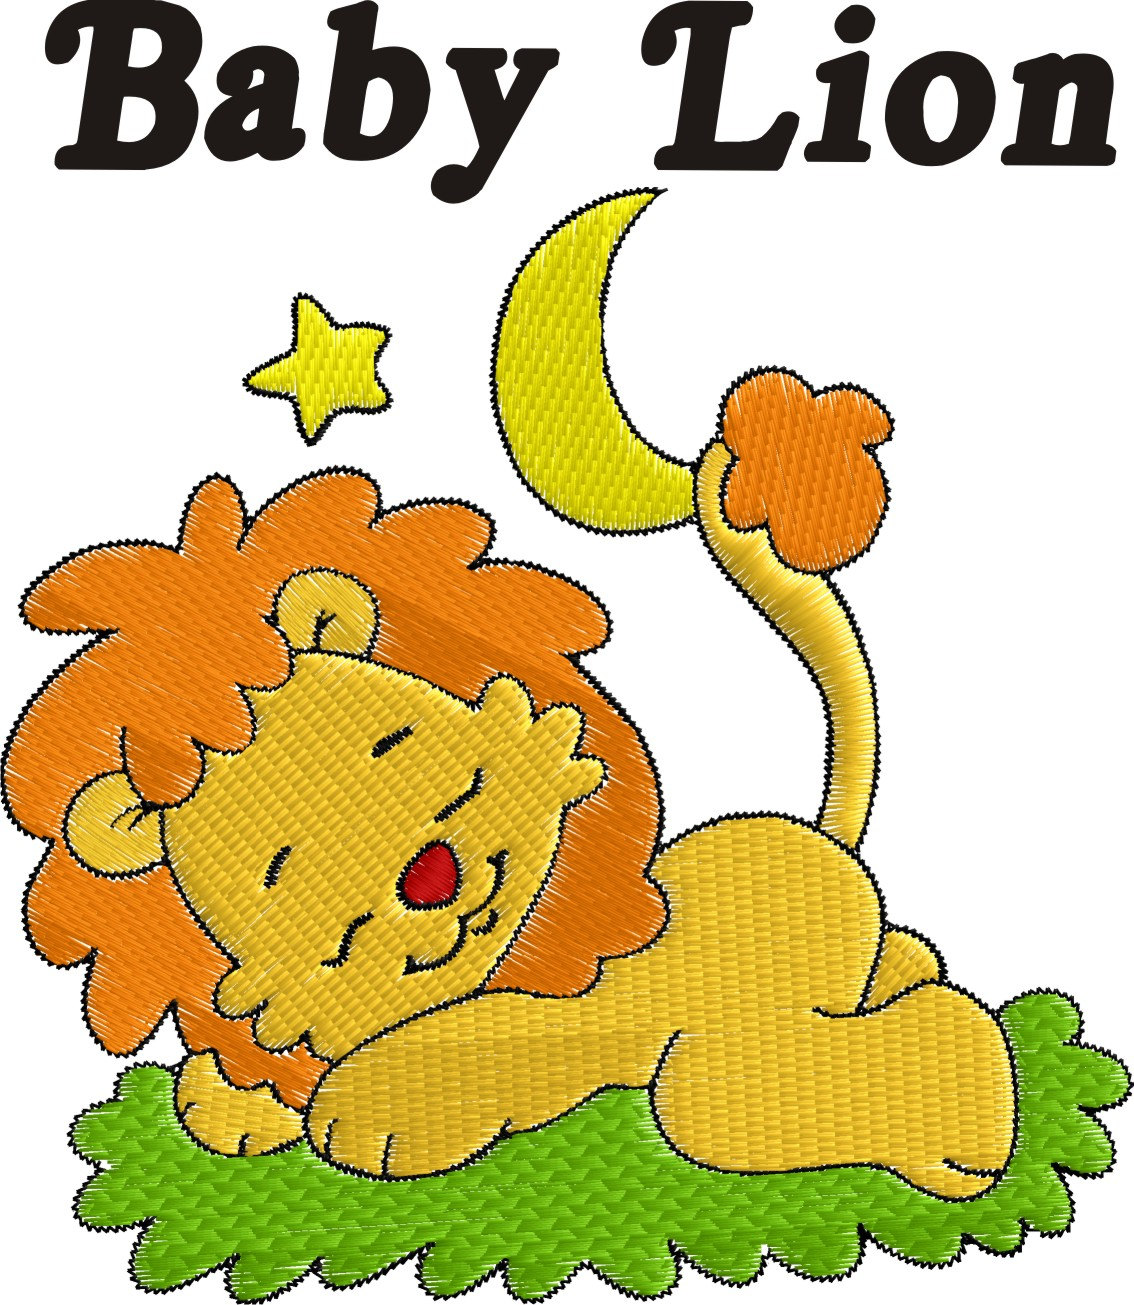 Sleeping Lion Clip Art.